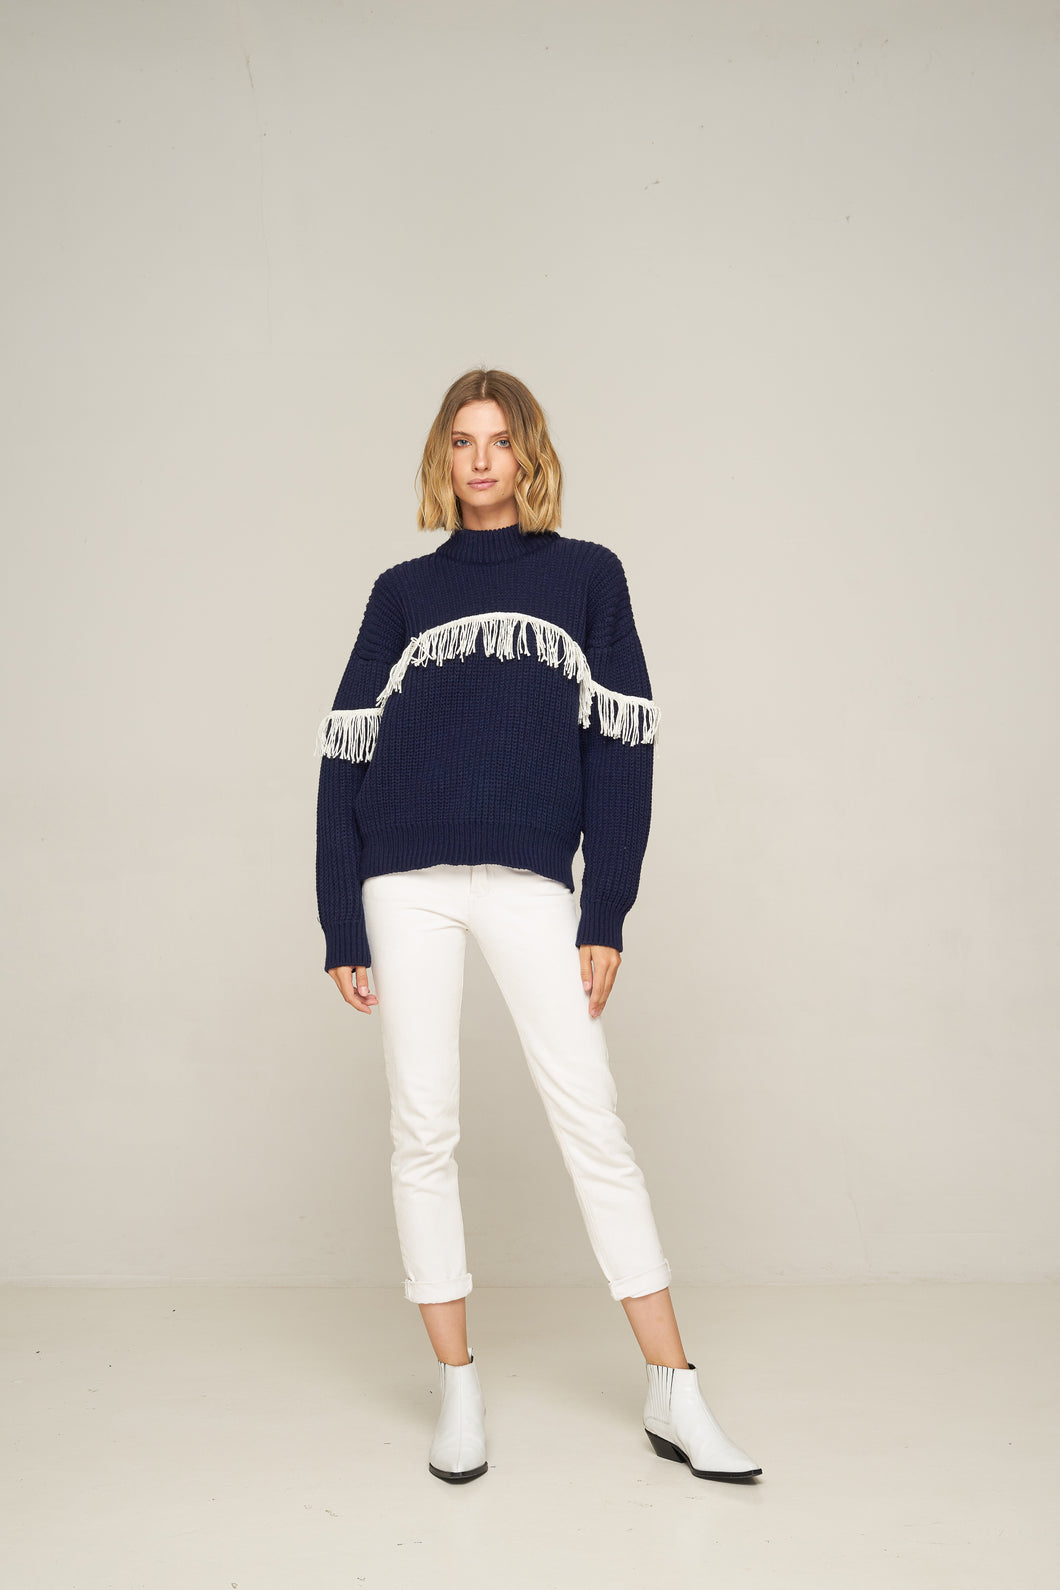 Rue Stiic Valentine Fringed Knit Navy with White Fringe Womens Wool Knit knitwear Womens Navy Knit knitwear Free Express Shipping Free Returns Free Standard Shipping Worldwide Afterpay $20 off your first order